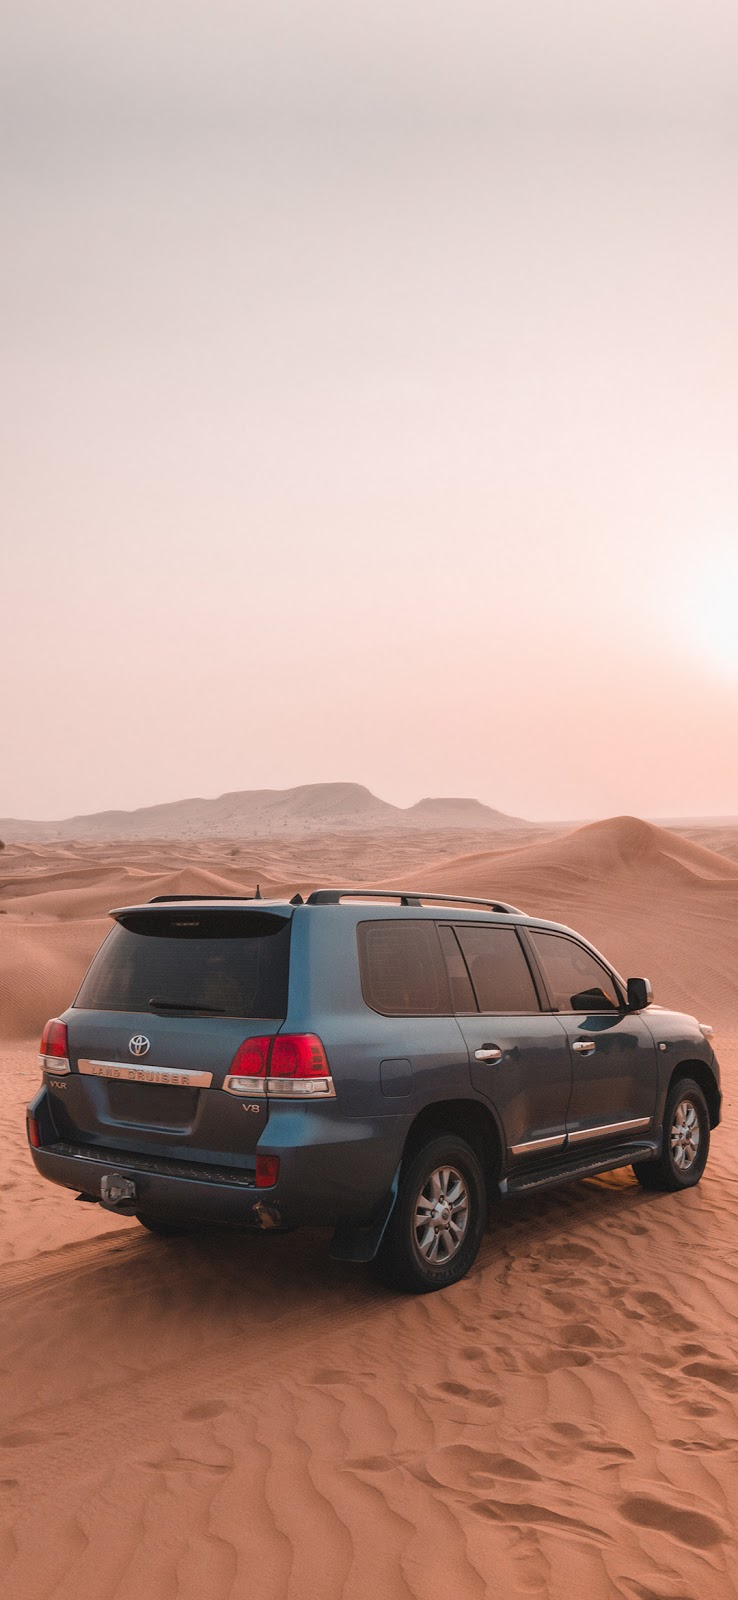 toyota suv on brown sand wallpaper